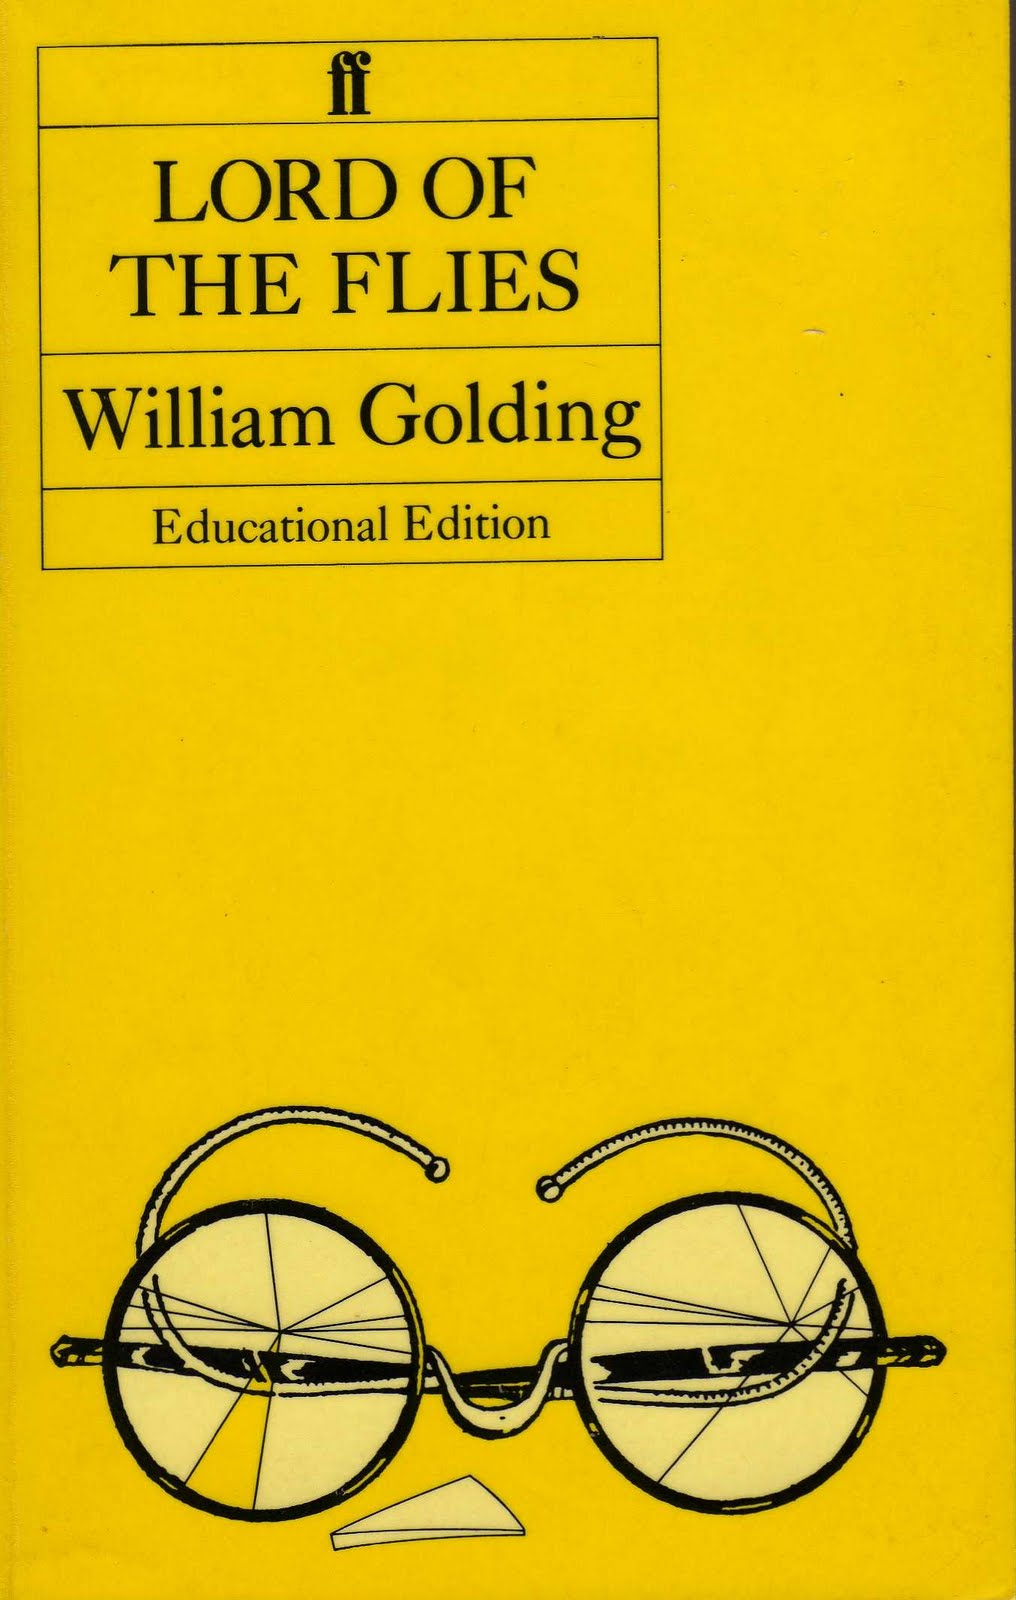 the shattering of reason within a society in lord of the flies by william golding Jean rousseau essay rousseau all dealt with the issue of political freedom within a society nature of man in the lord of the flies by william golding.